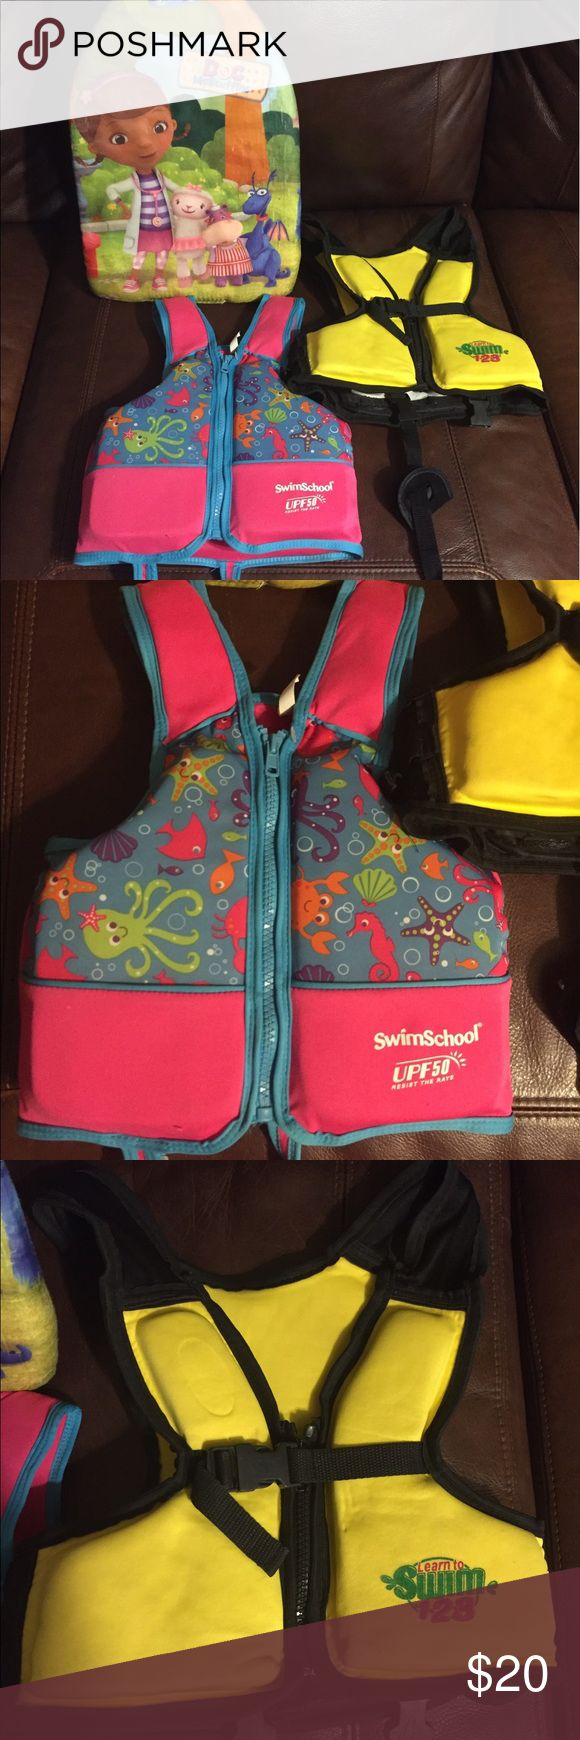 Swim vest bundle Two swim vests with parachute hooks and Dora paddle board.  Pink vest has one latch.  Yellow vest parachute latches are broken (easily replaced).  Feel free to make offer! Swim